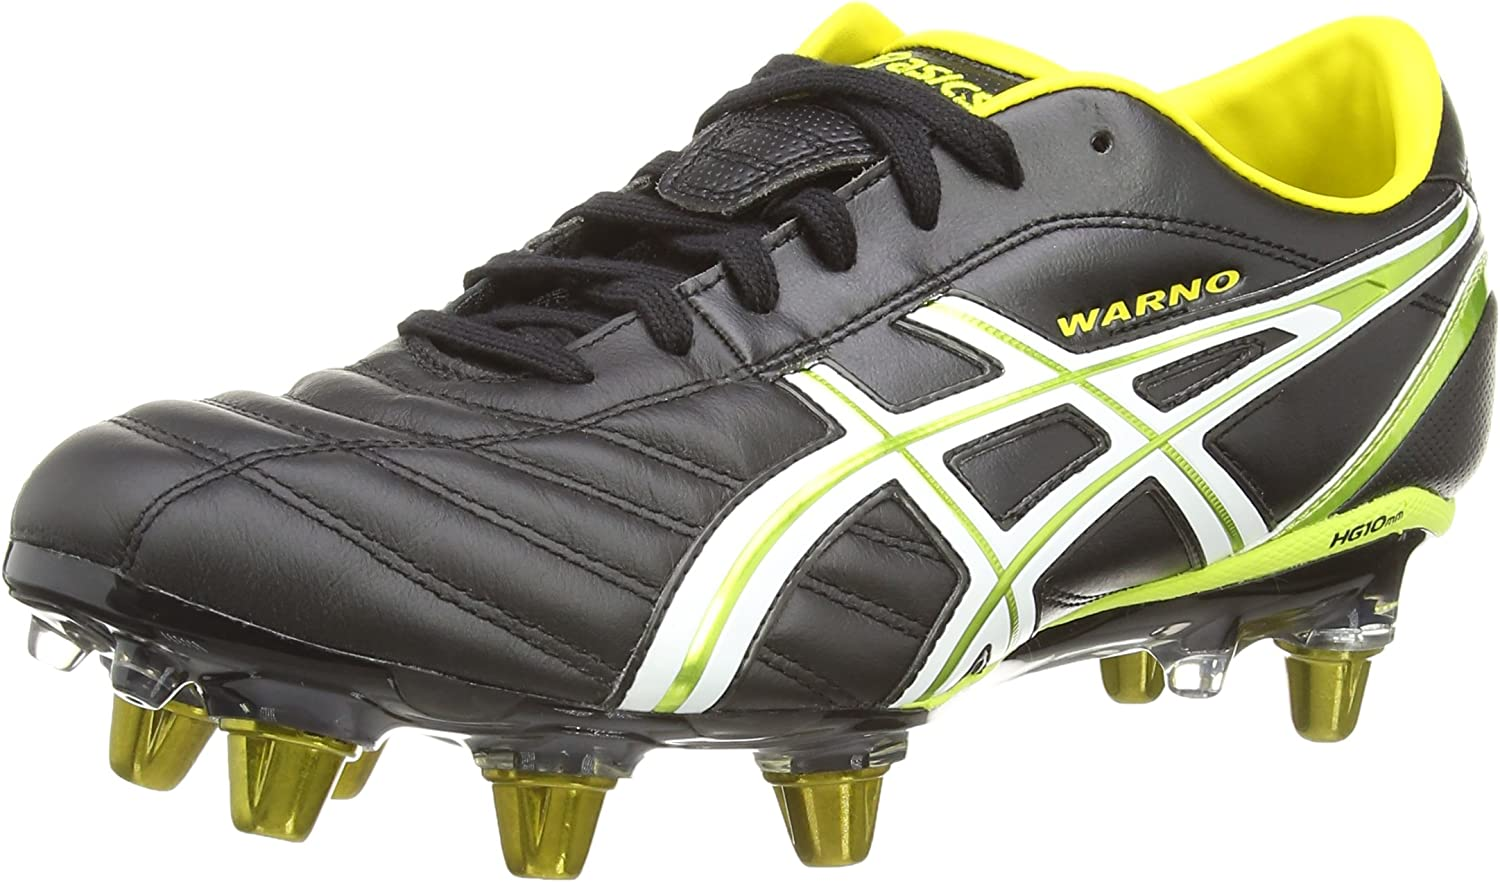 ASICS Lethal Warno ST2 Rugby Boots - 14